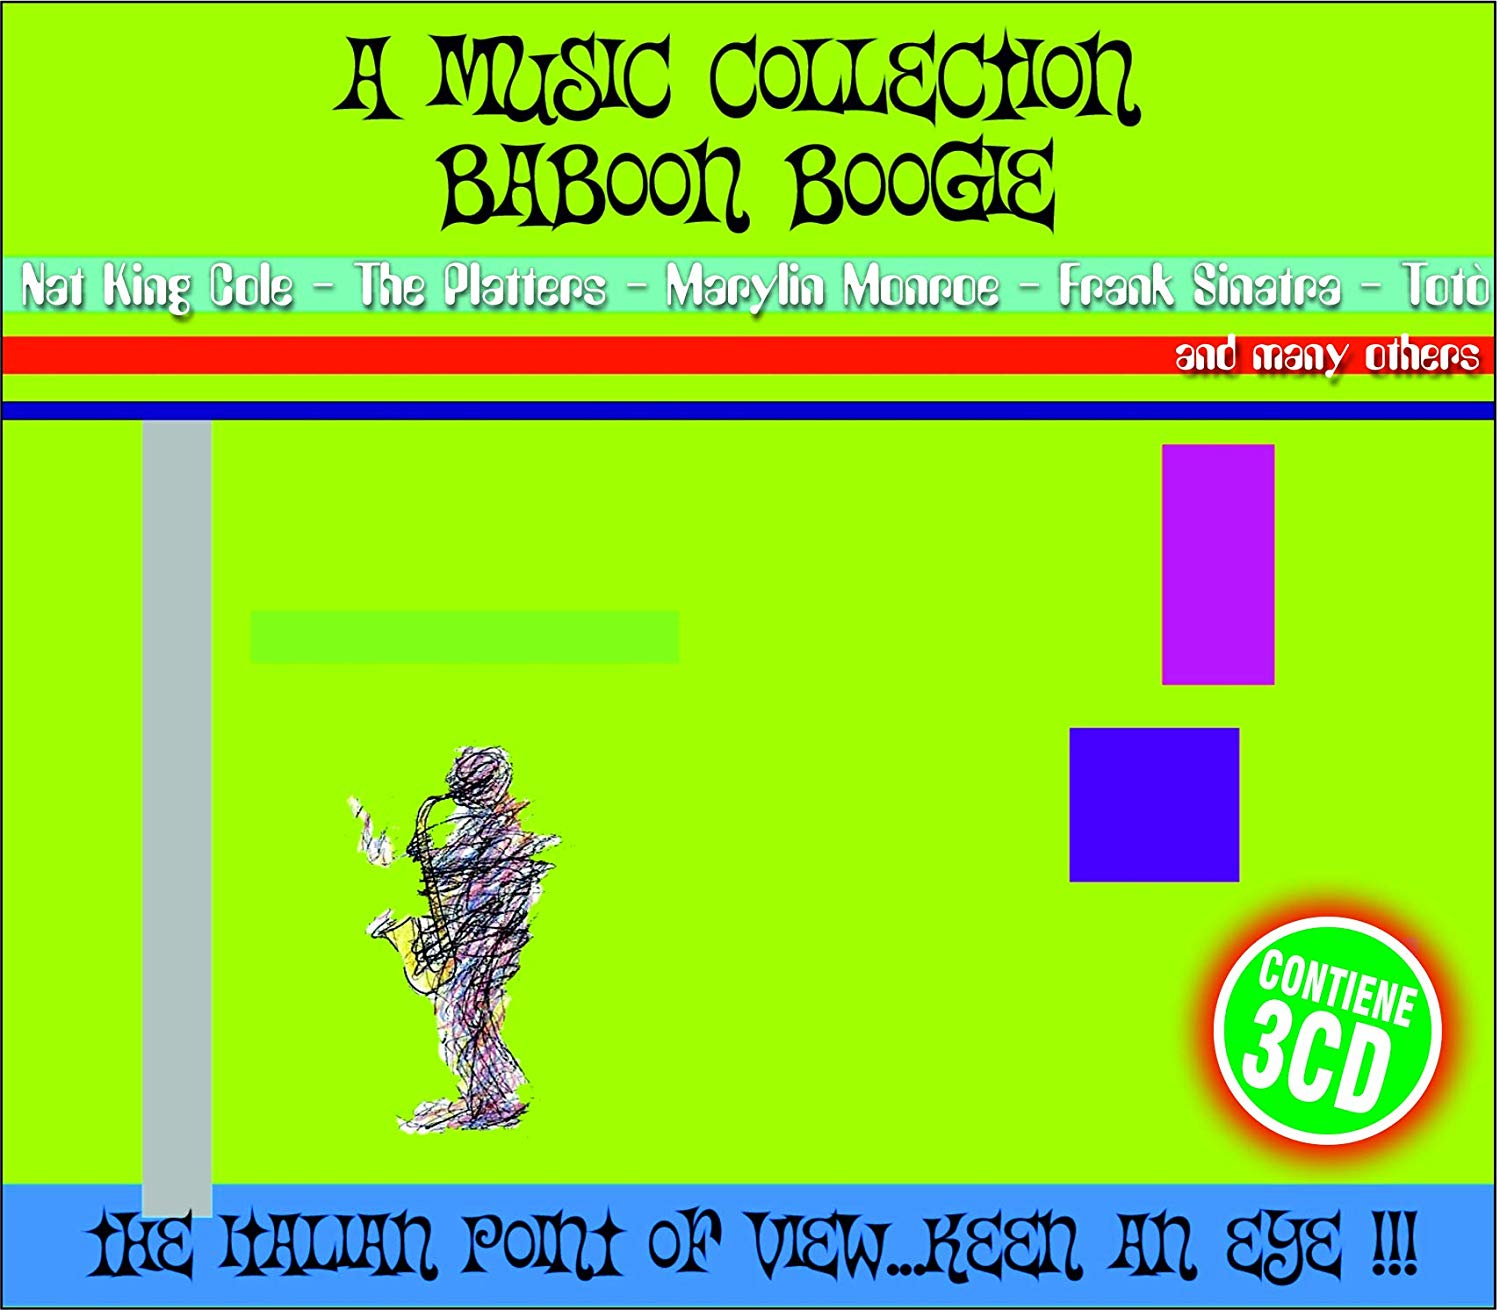 A MUSIC COLLECTION BABOON BOOGIE